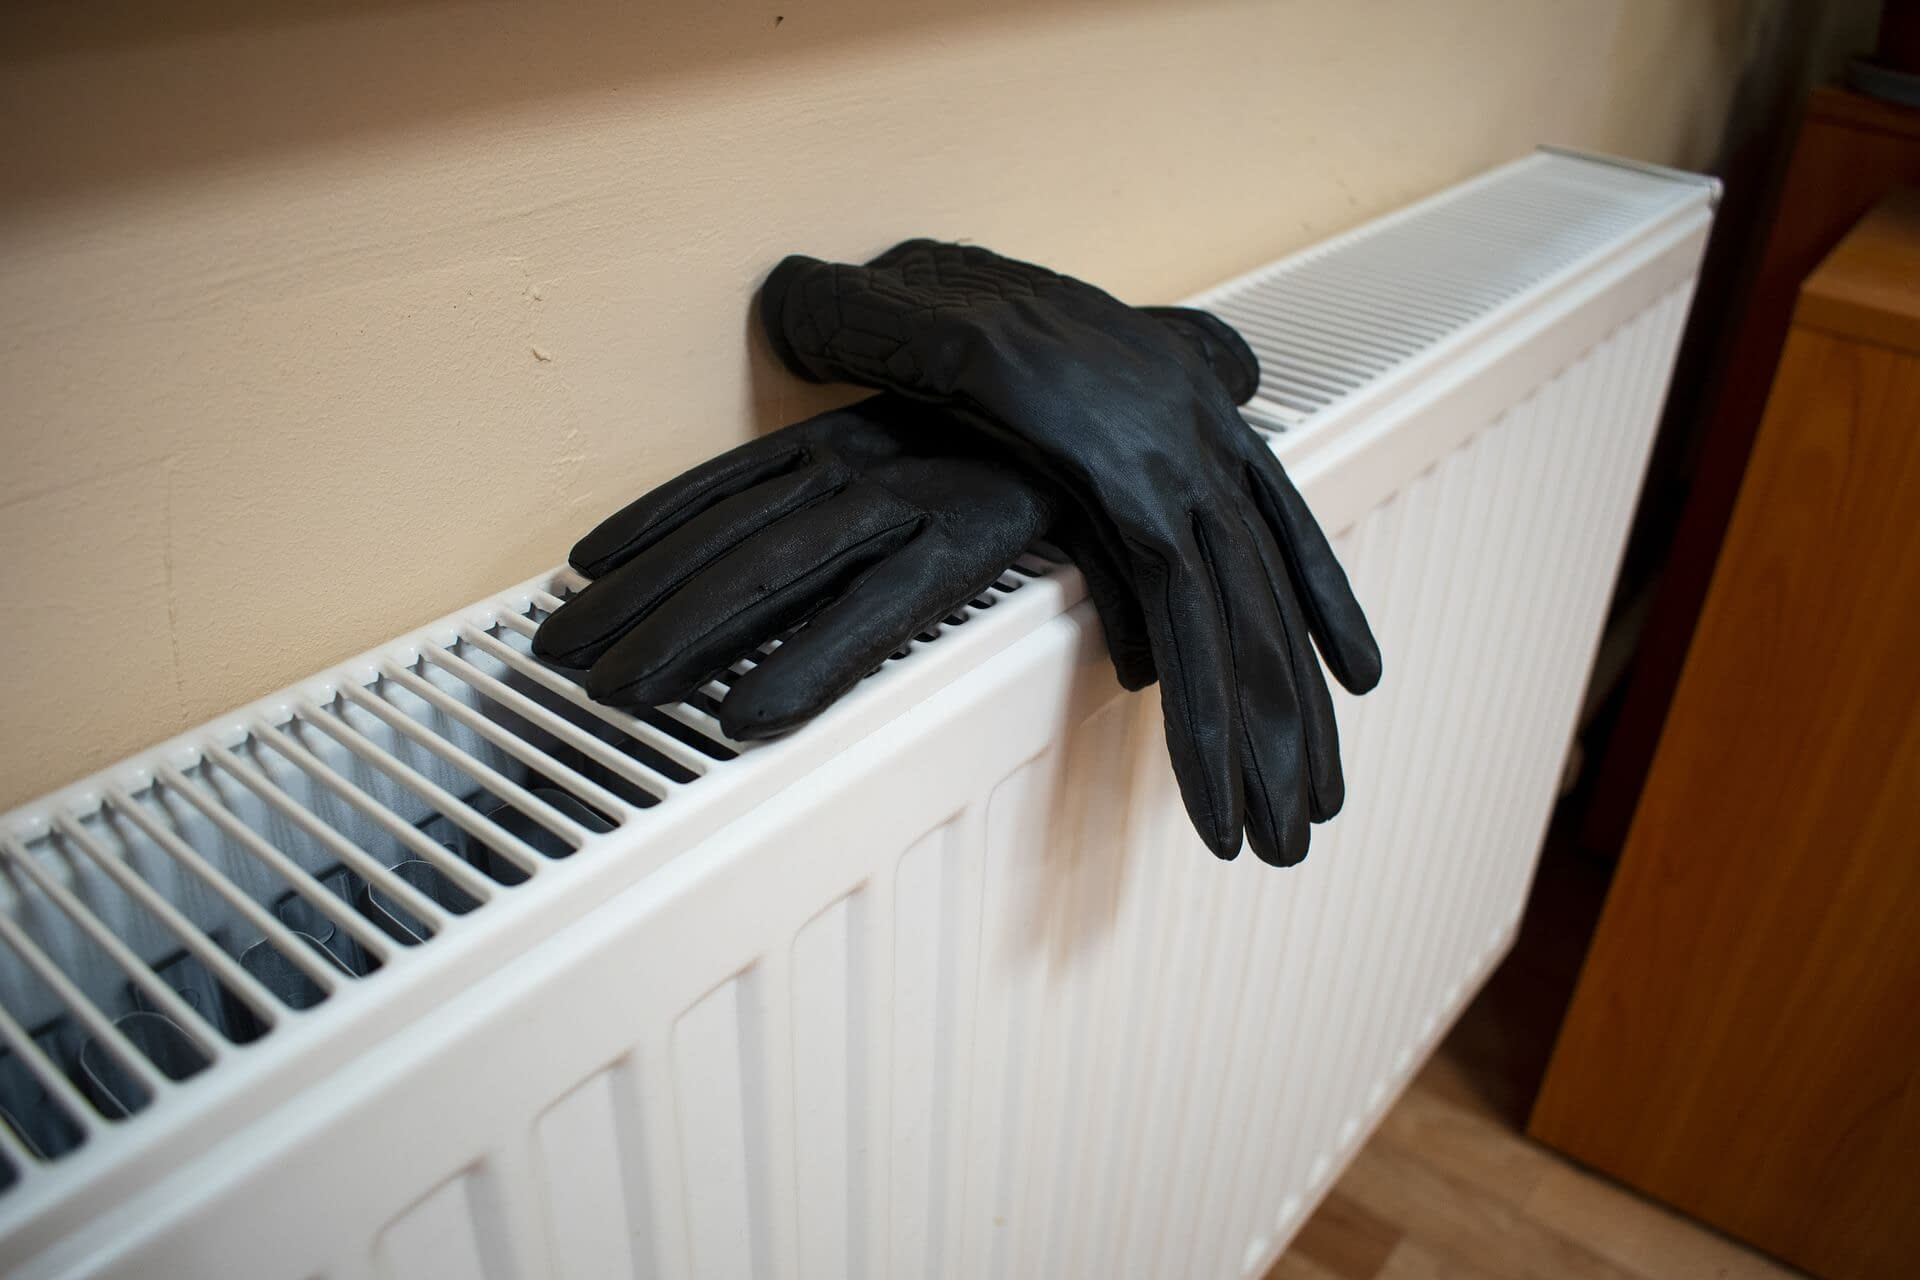 Heater with gloves on it